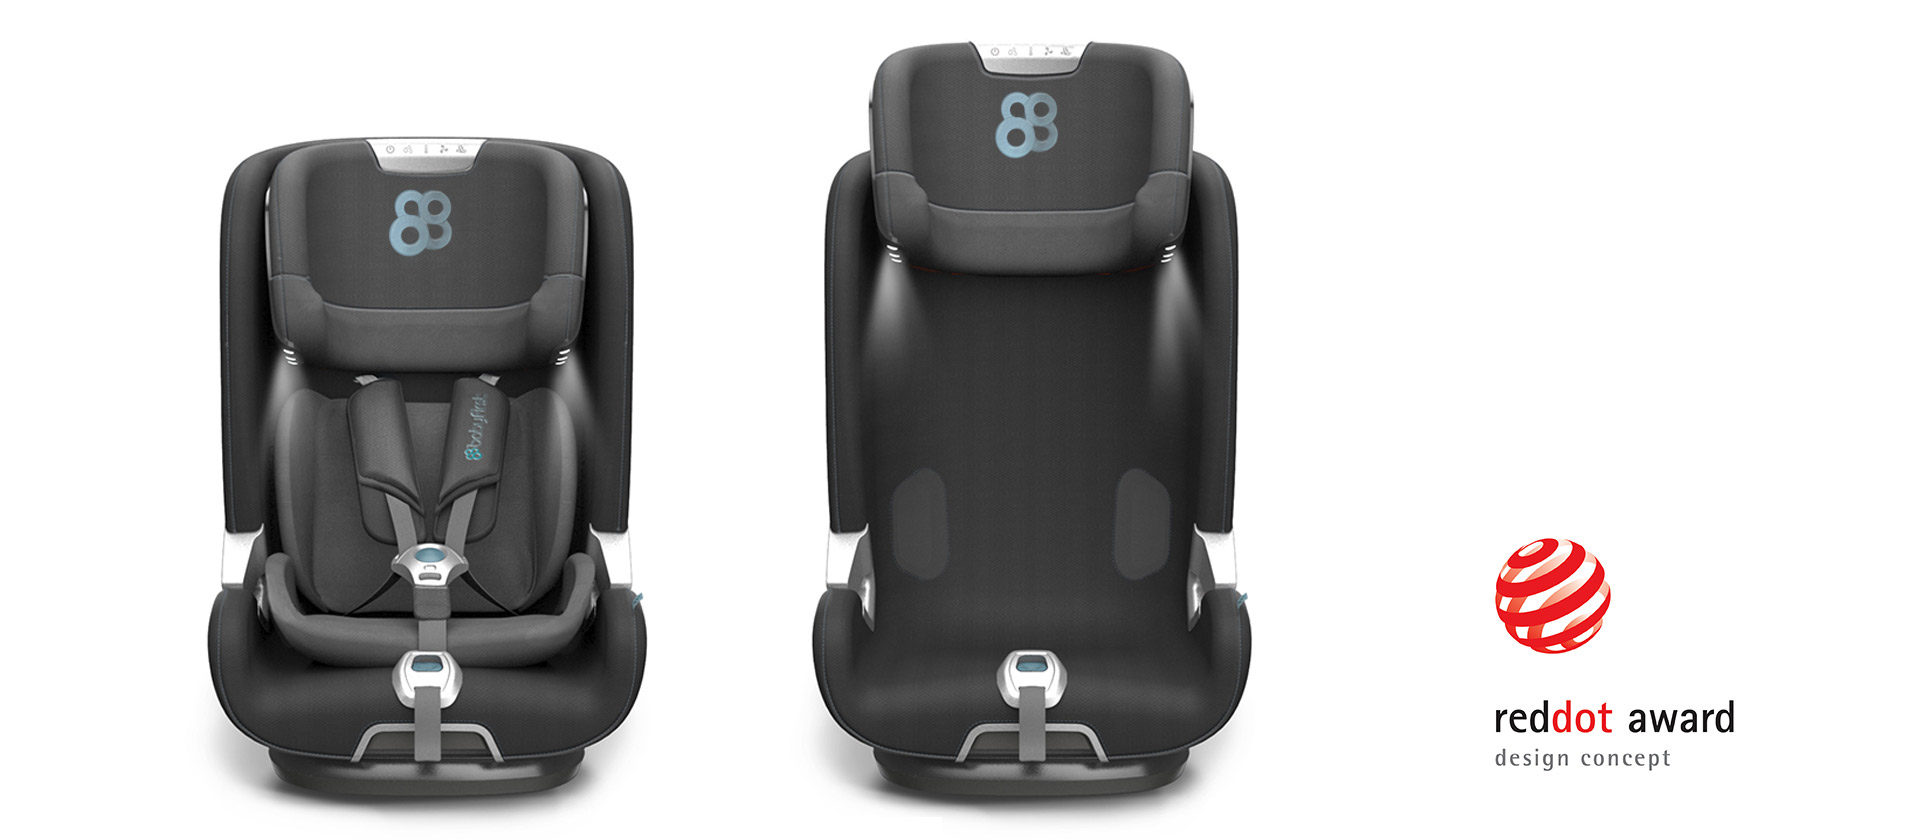 Red Dot Award winner 2018: Smart design for baby car seat with sensors and comfortable shapes